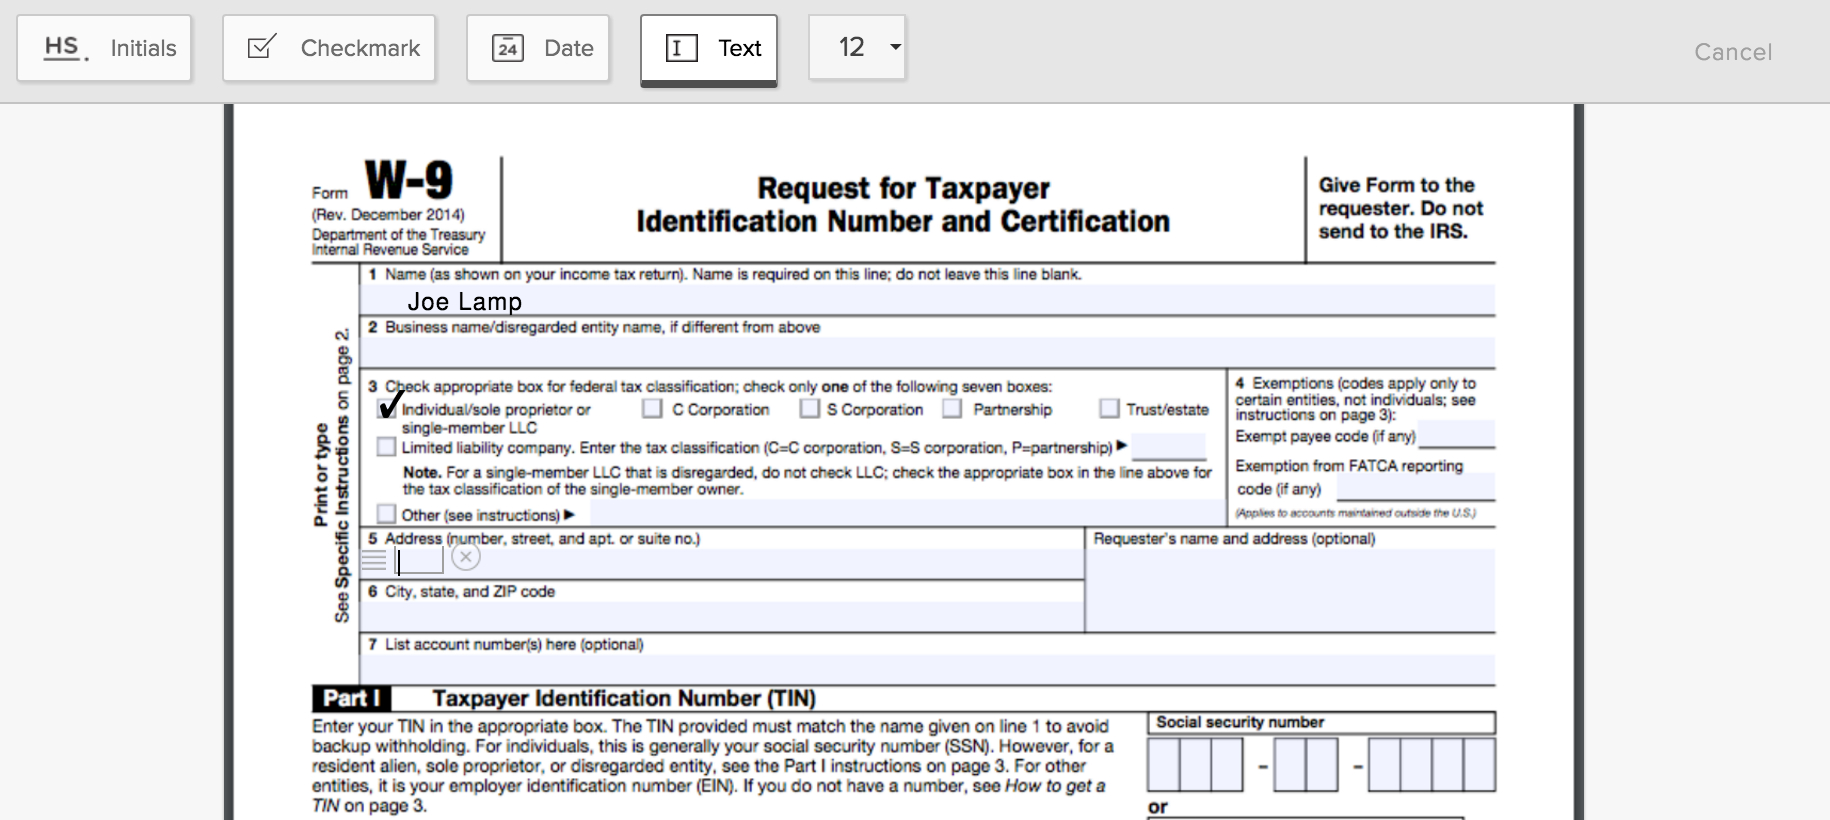 How To Fill Out A W-9 Form Online | Hellosign Blog - Free Printable I 9 Form 2016